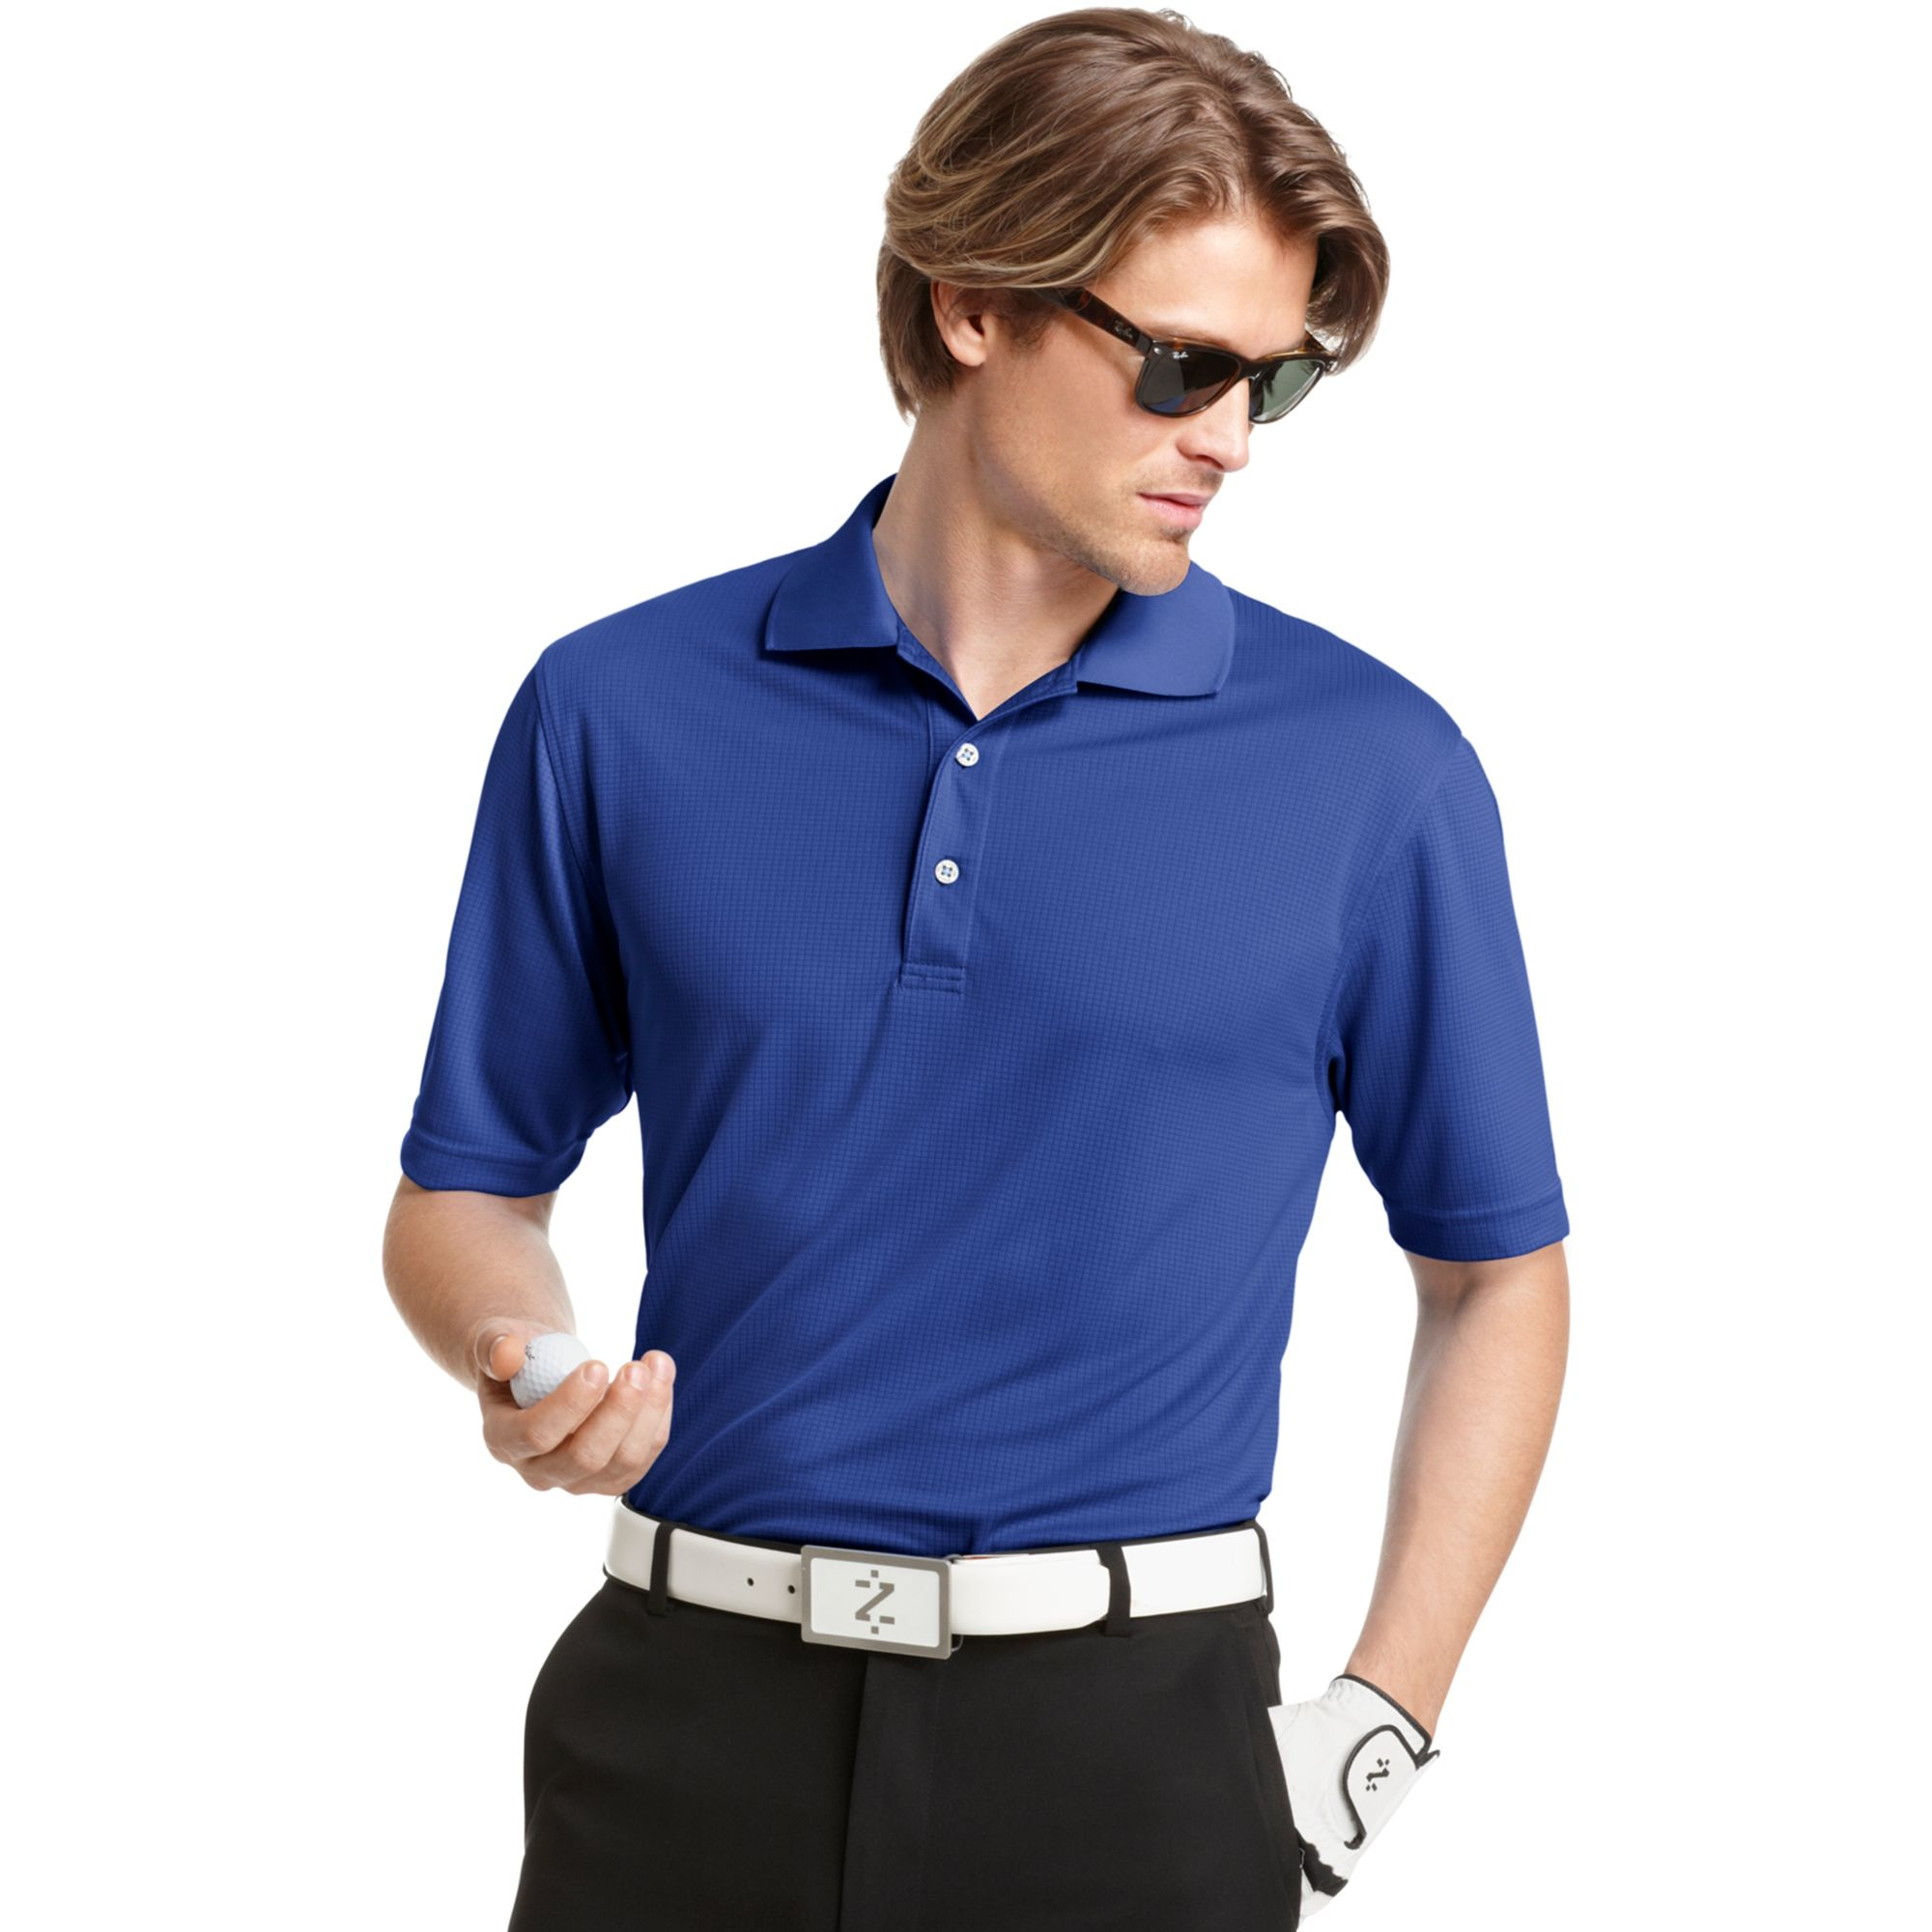 Izod performance solid grid golf polo in blue for men for Big and tall golf shirts